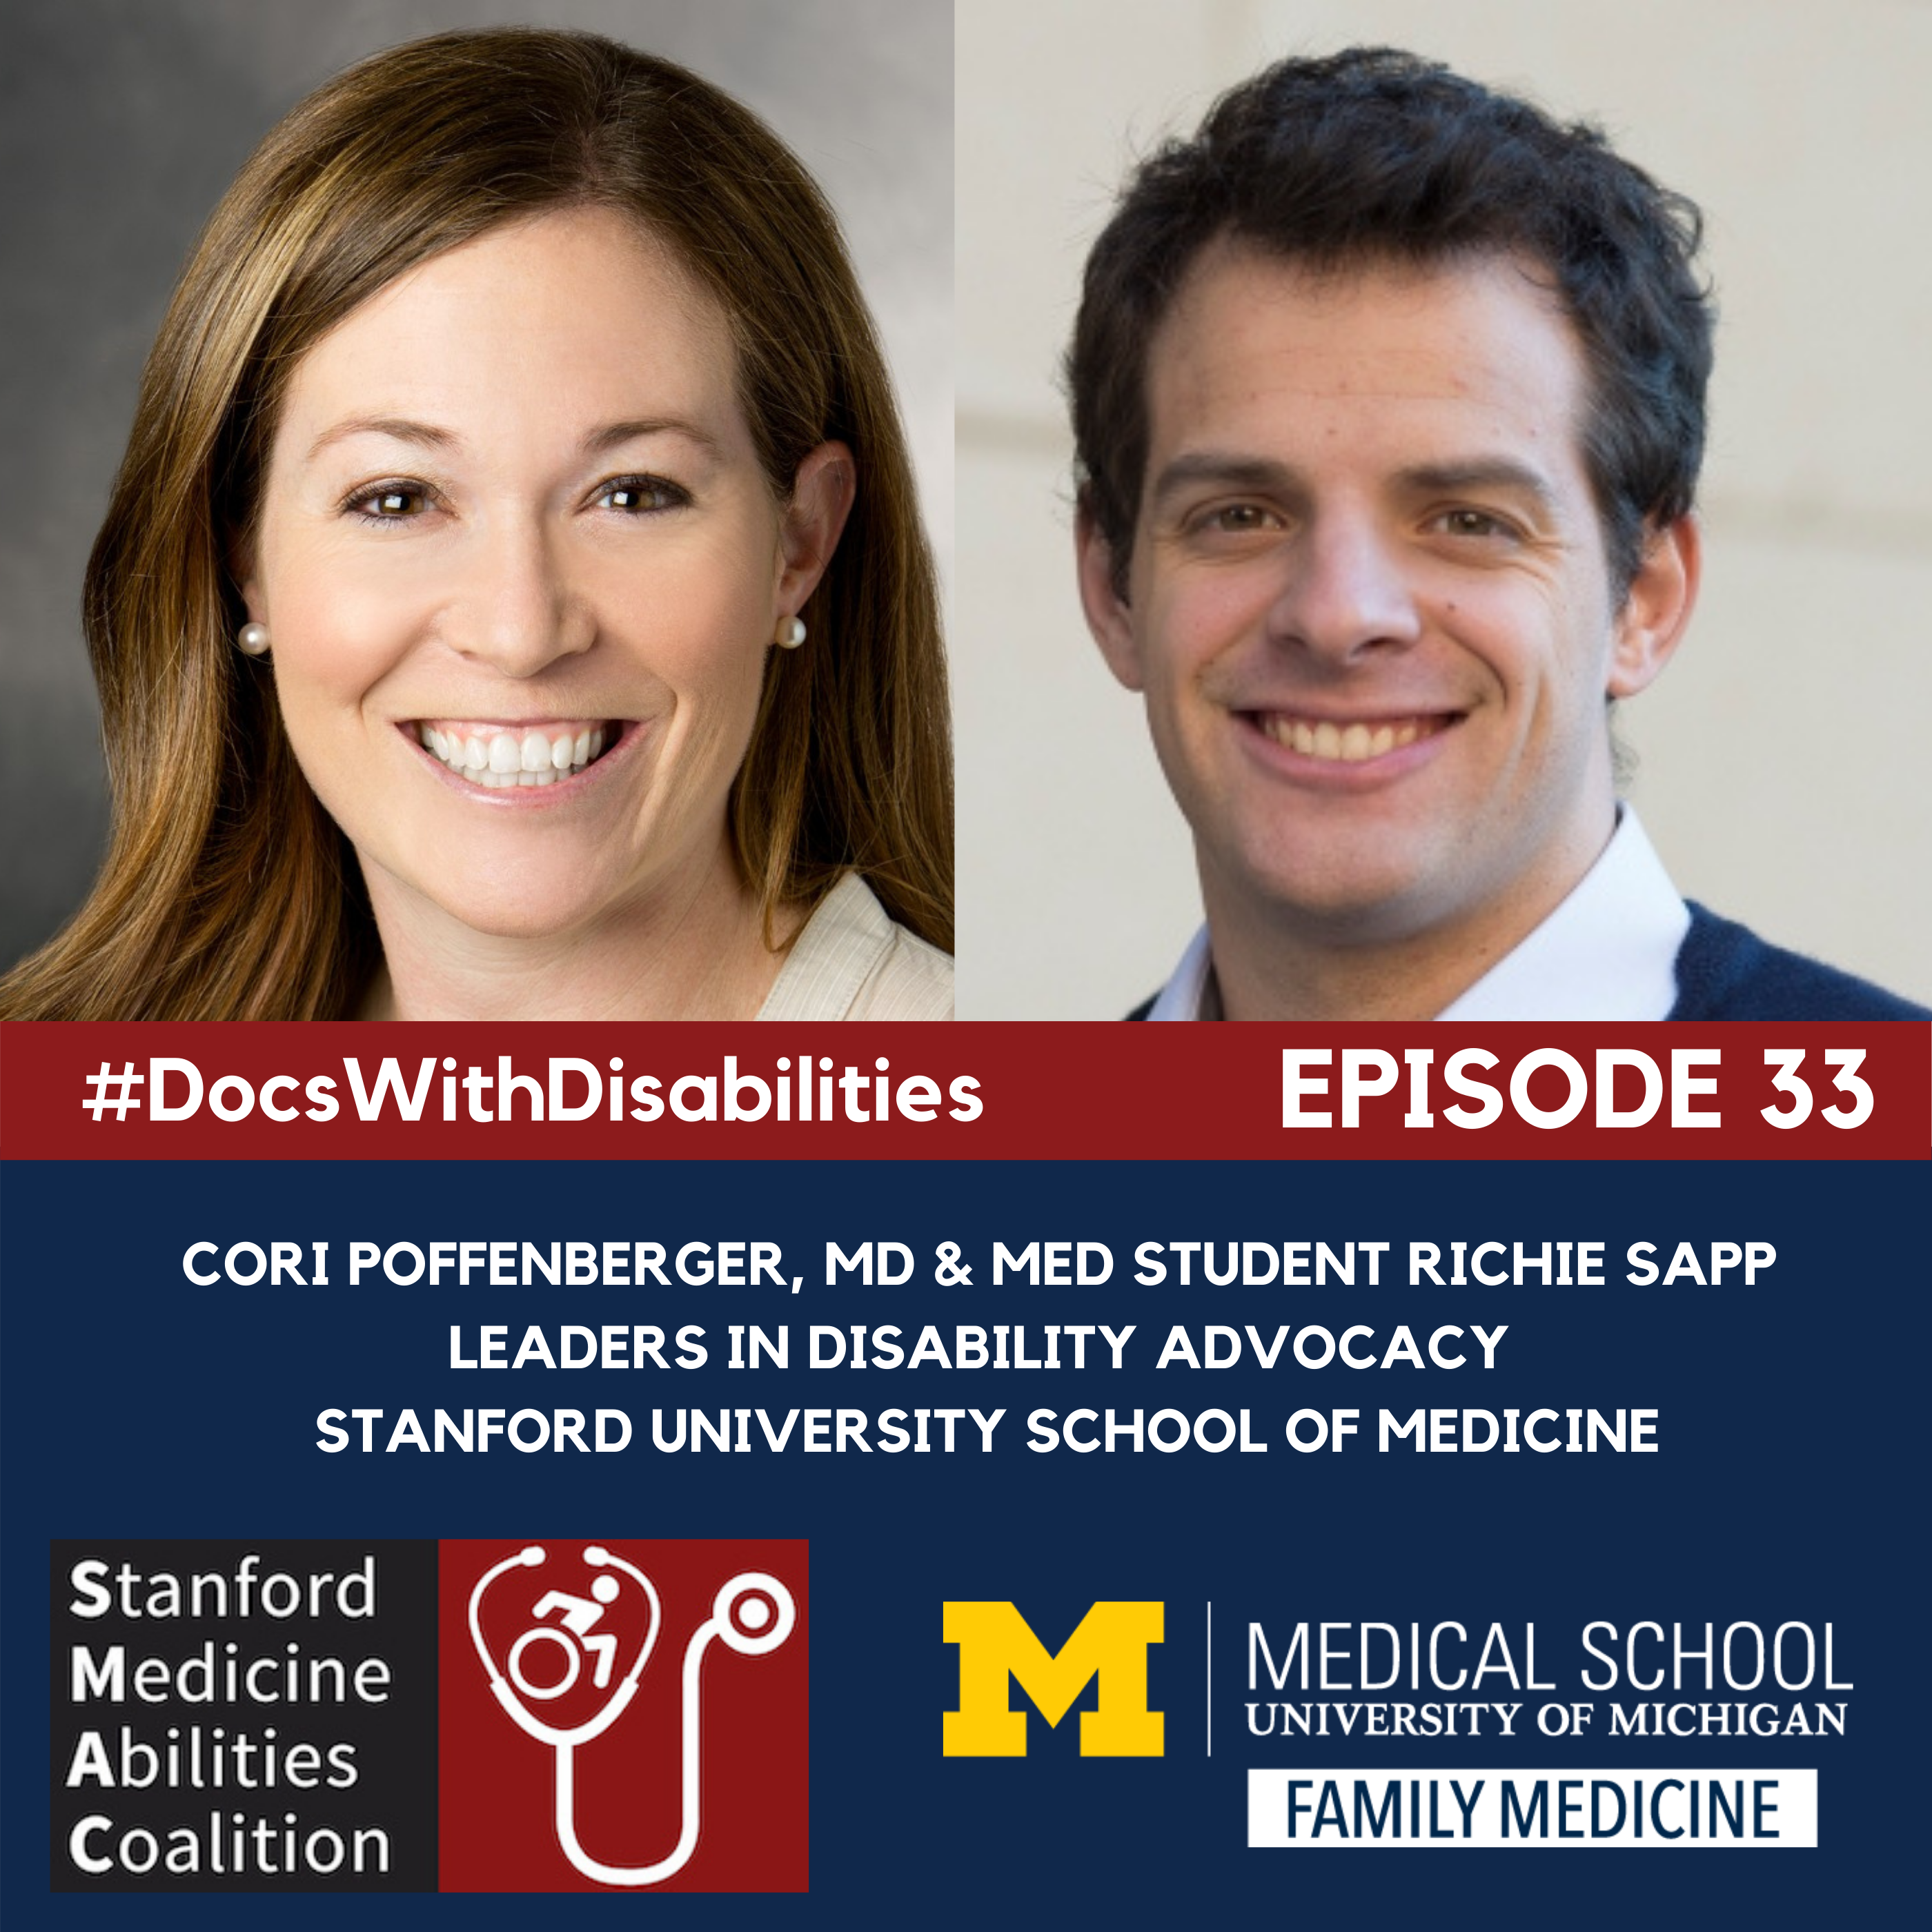 Docs With Disabilities Podcast Episode 33: Cori Poffenberger, MD, and med student Richie Sapp. Leaders in disability advocacy Stanford University School of Medicine. Stanford Medicine Abilities Coalition. U-M Medical School Family Medicine